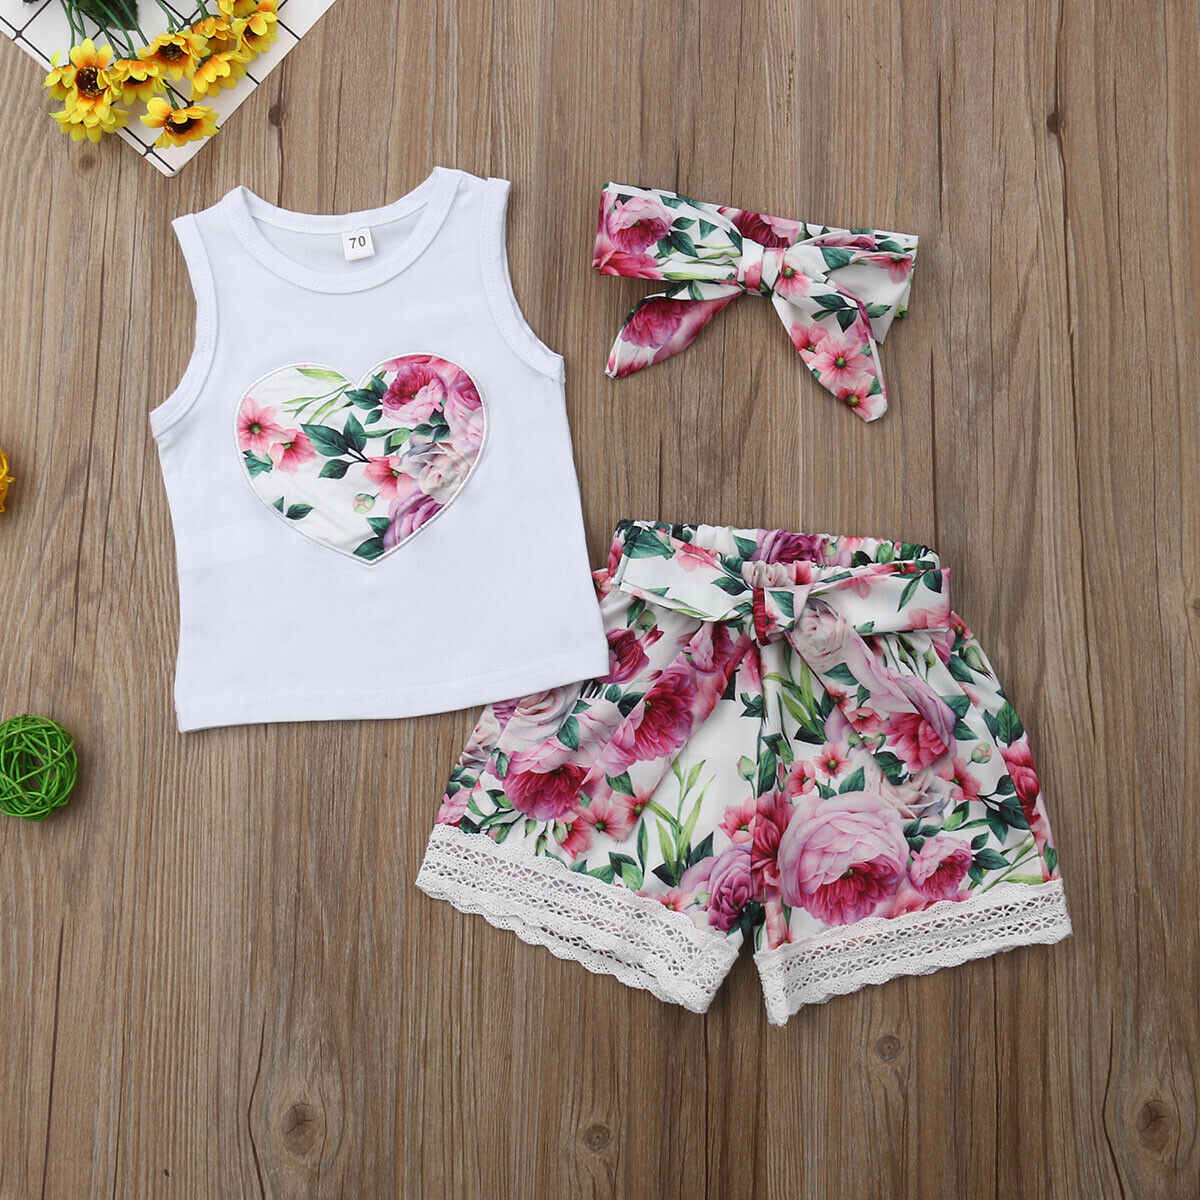 468af7244653 ... Emmababy 2019 Summer Newborn Baby Girl Clothes Sleeveless Floral Tops+LaceFloral  Shorts Outfits Set Sunsuit ...